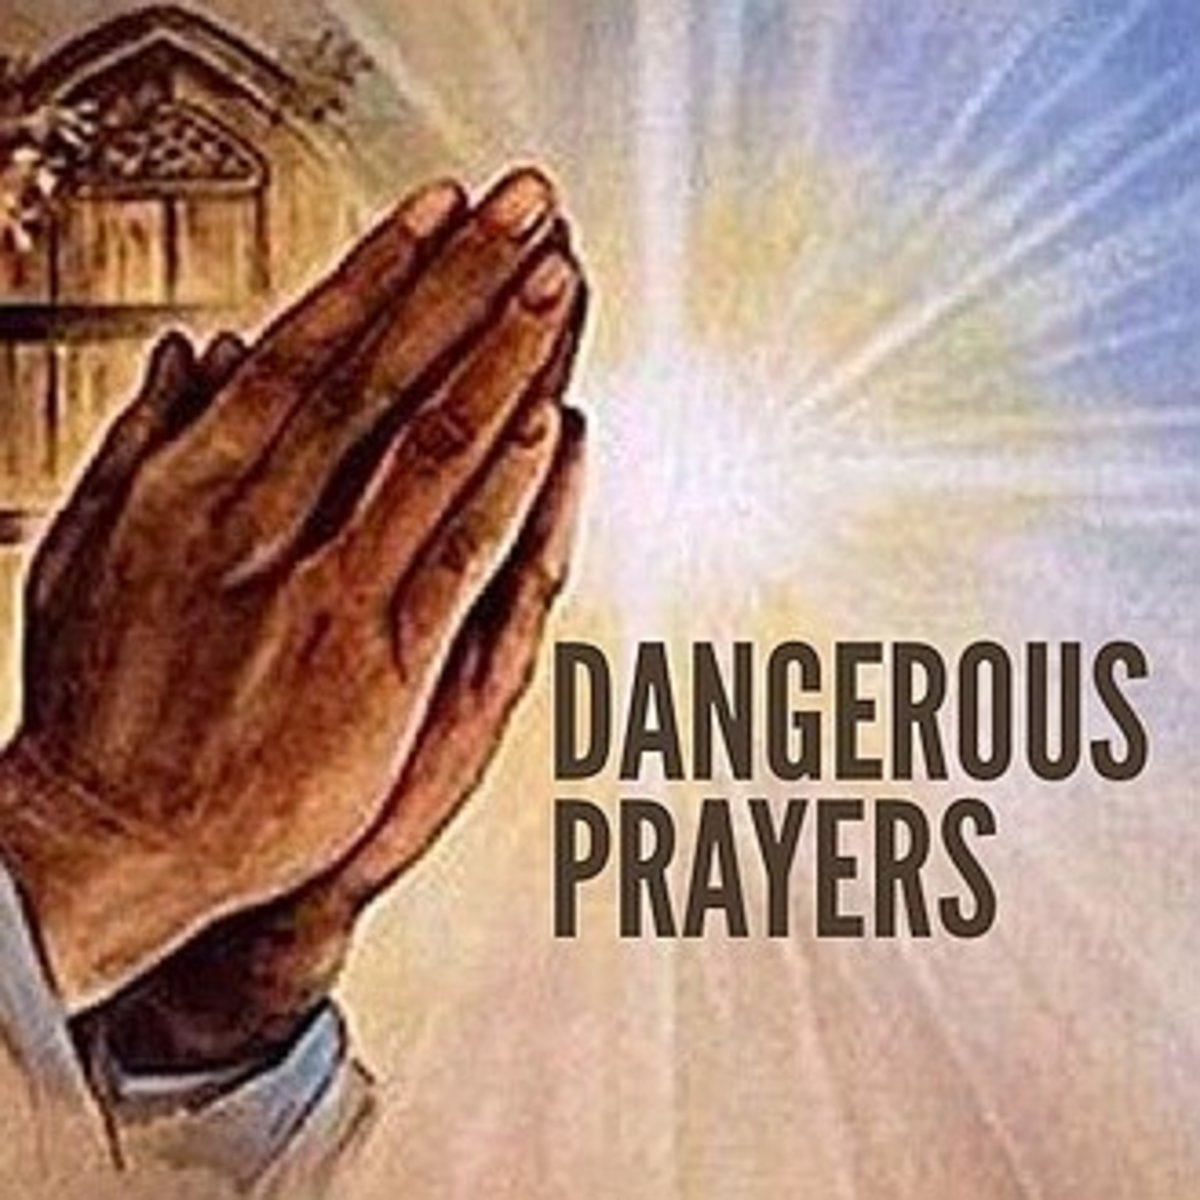 Dangerous Prayers You Might Not Want to Pray